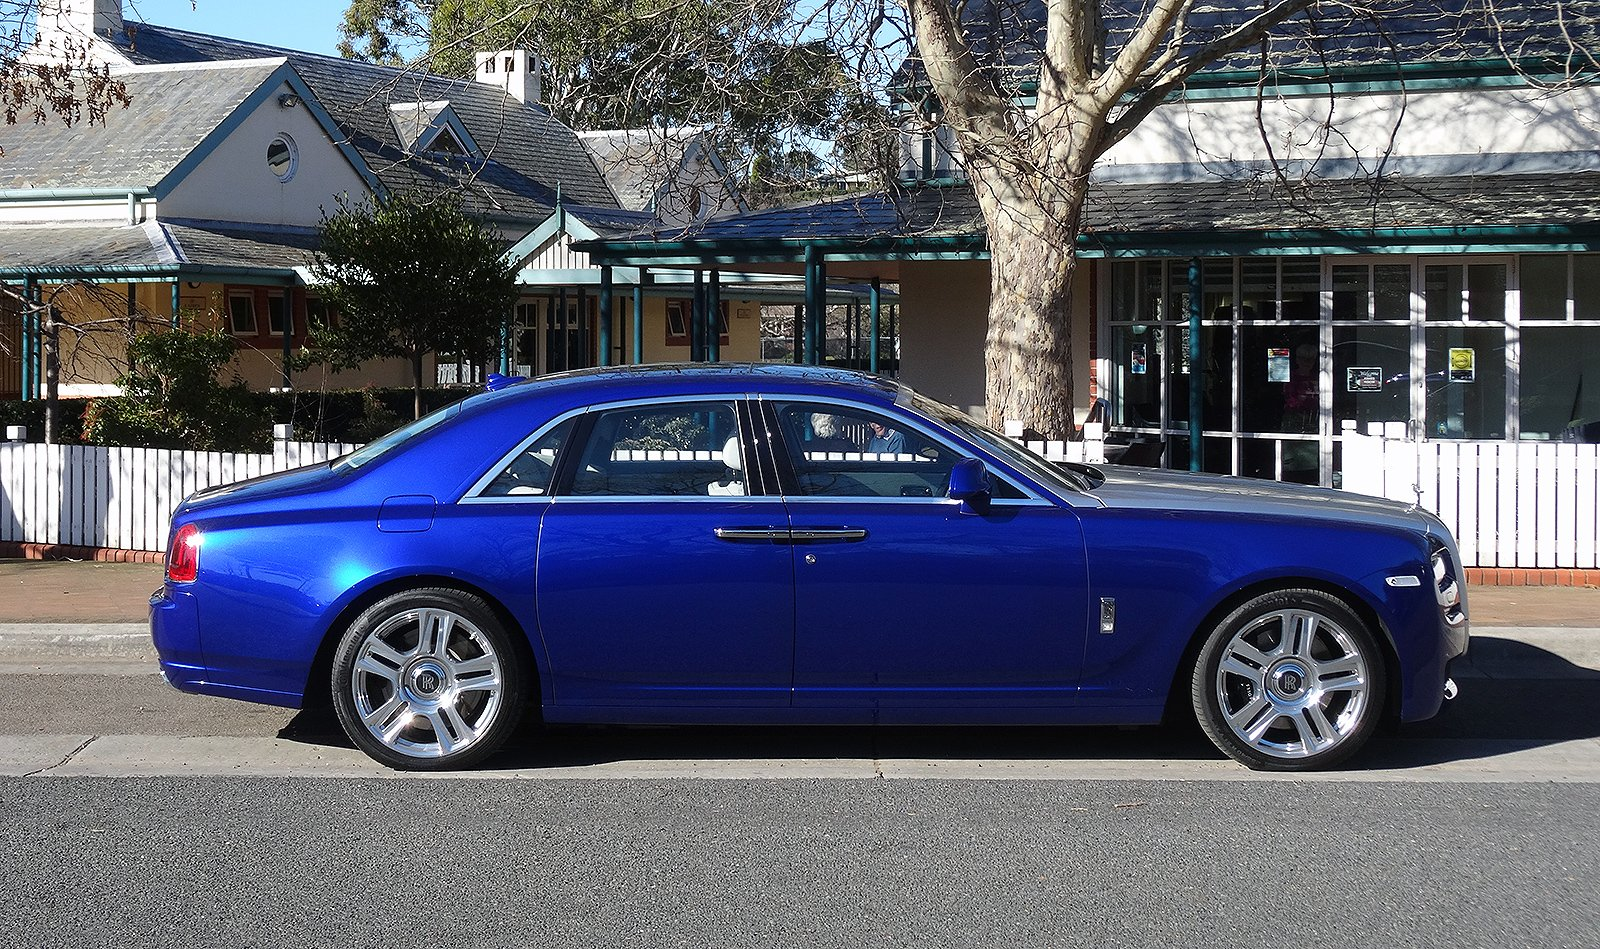 2015 Rolls Royce Ghost Sii Review Photos Caradvice